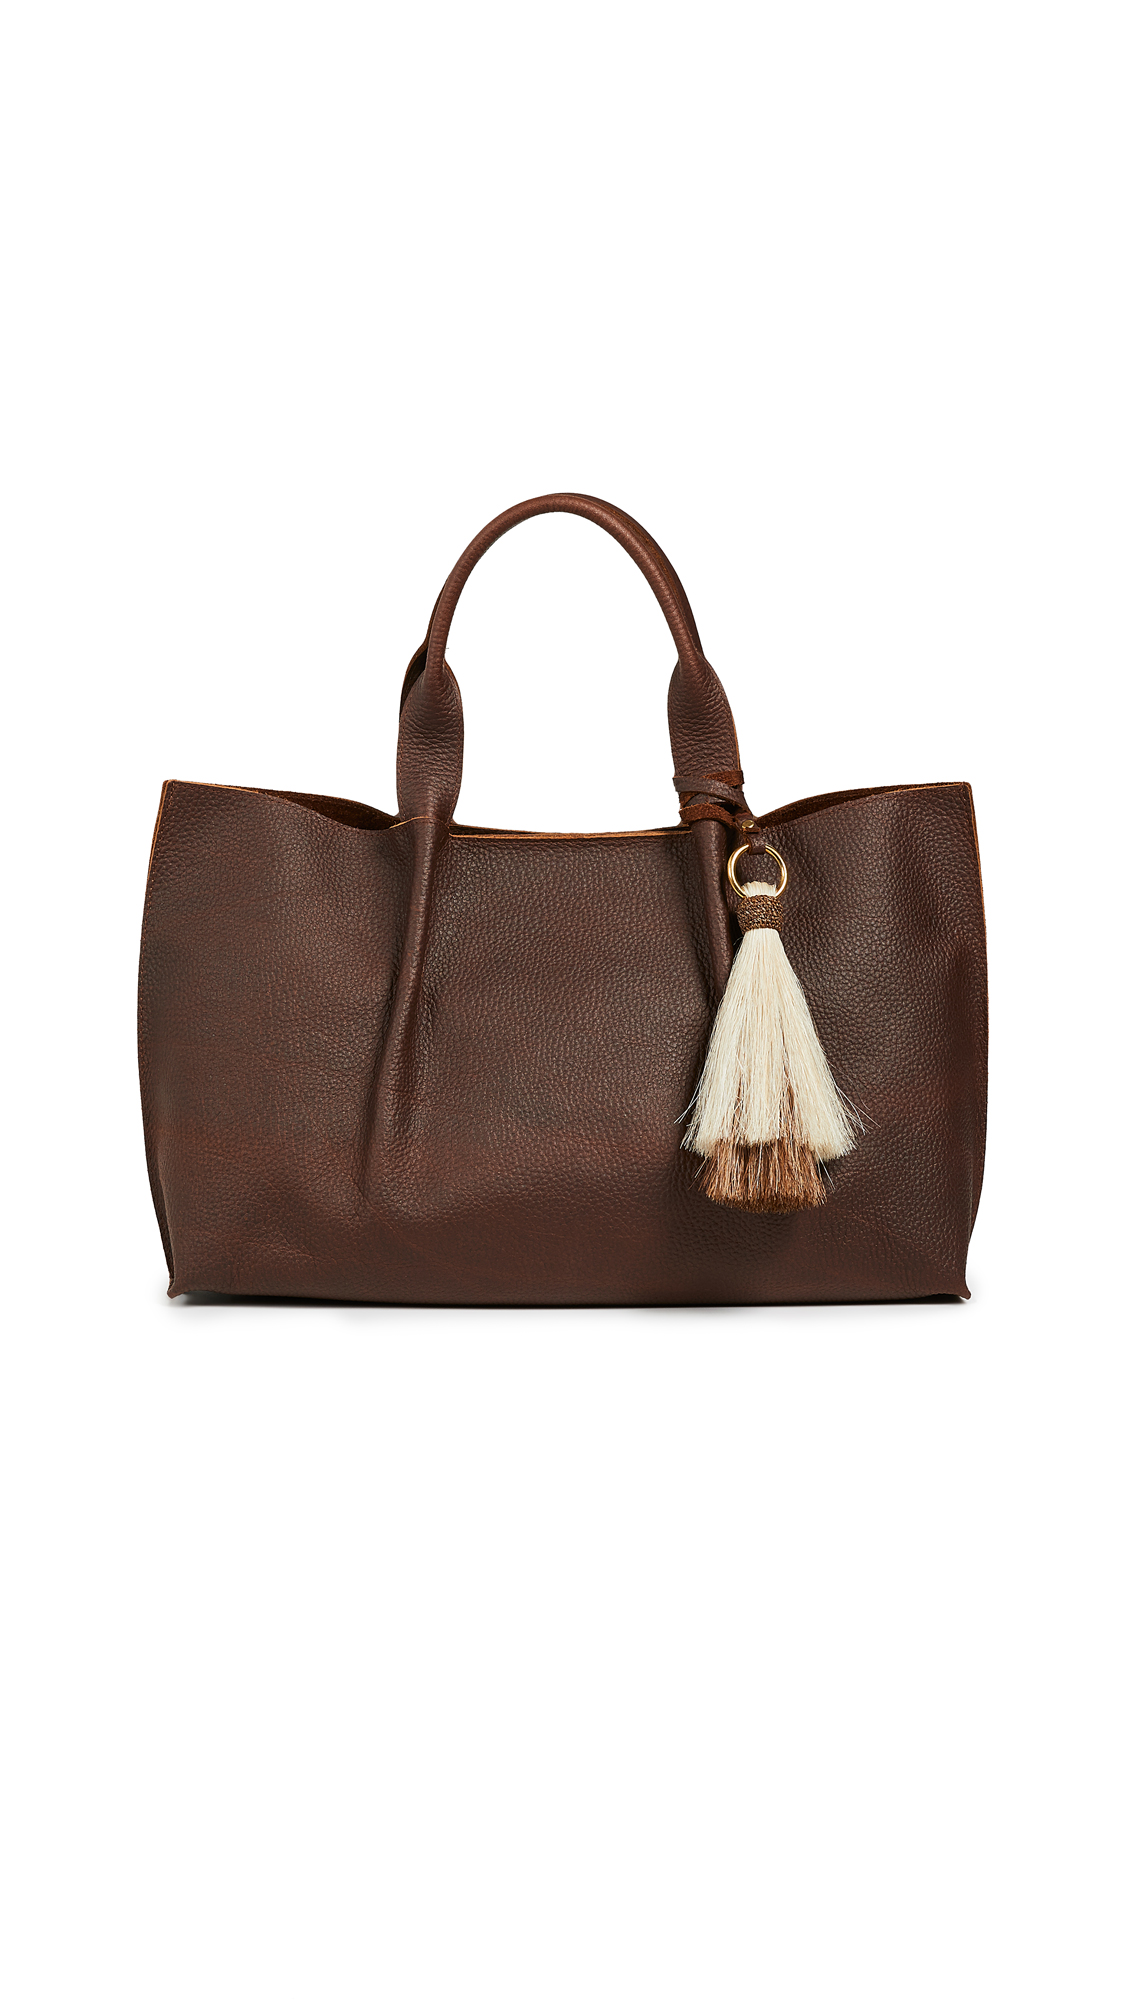 OLIVEVE ISABEL EAST/WEST TOTE BAG